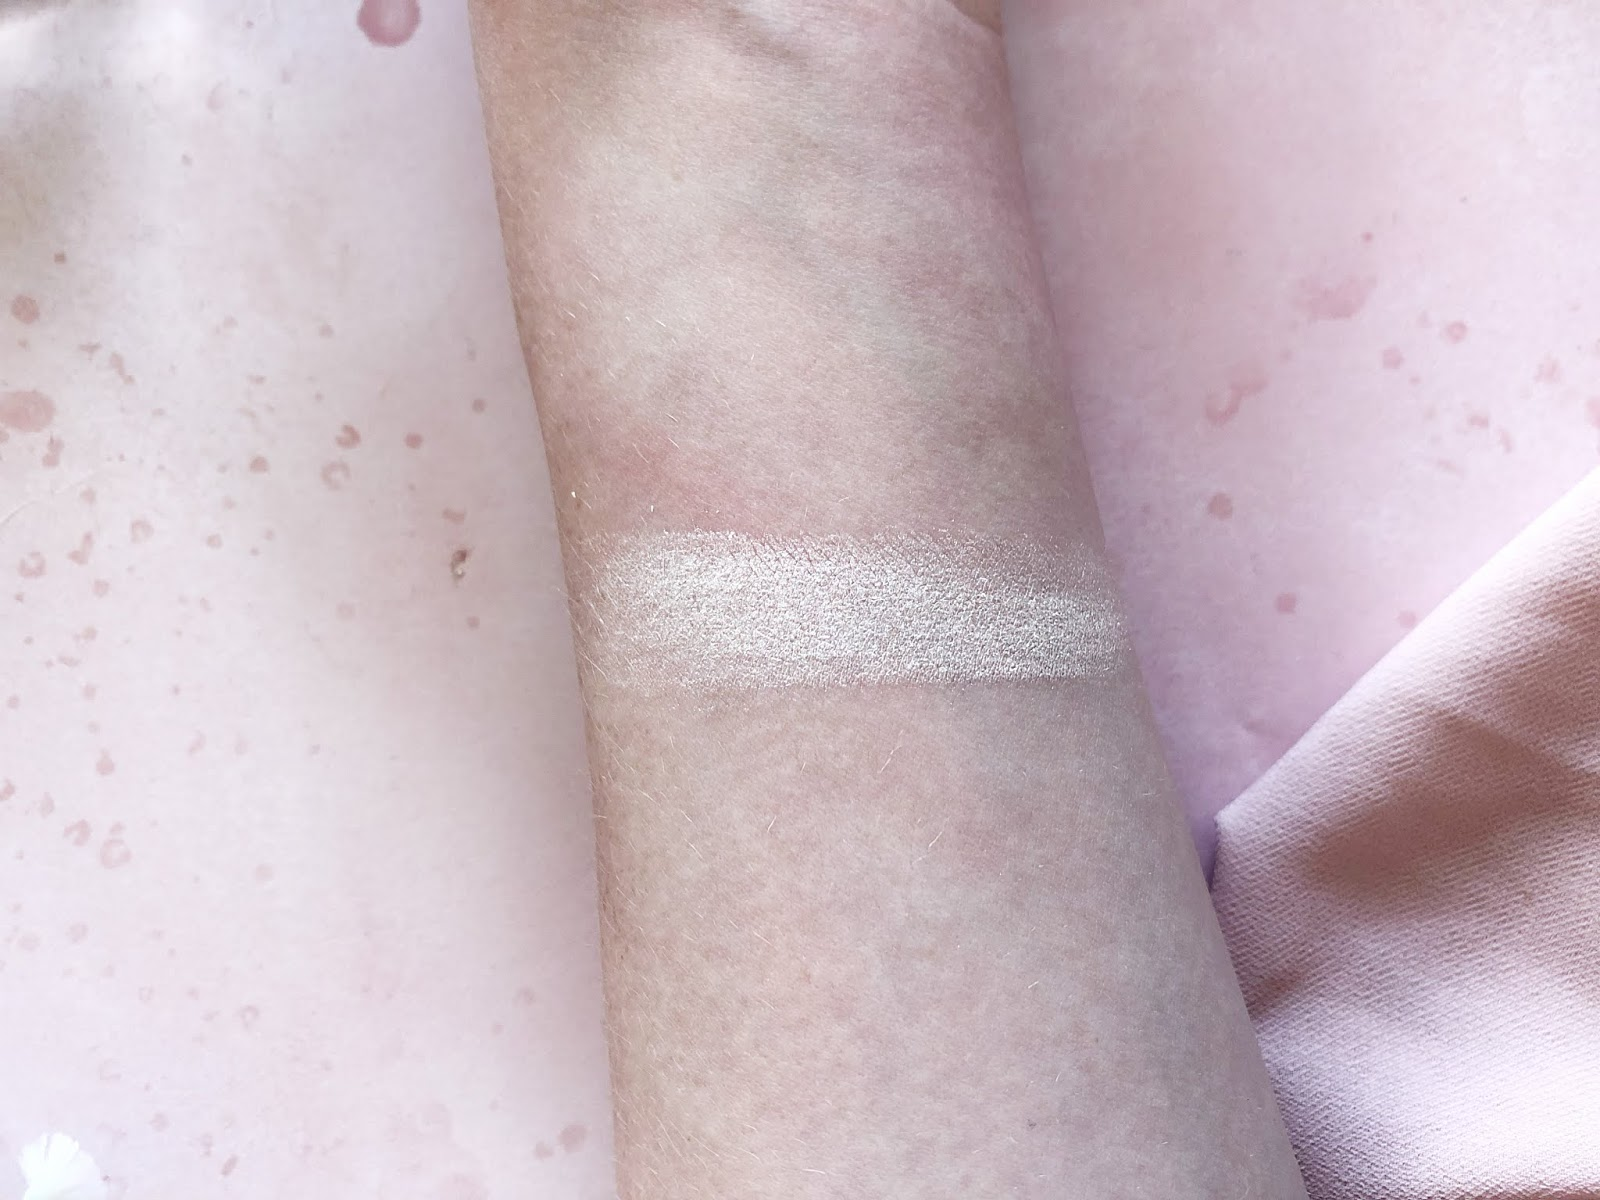 Ofra x Nikkie Tutorials Glazed Donut Highlighter Swatch